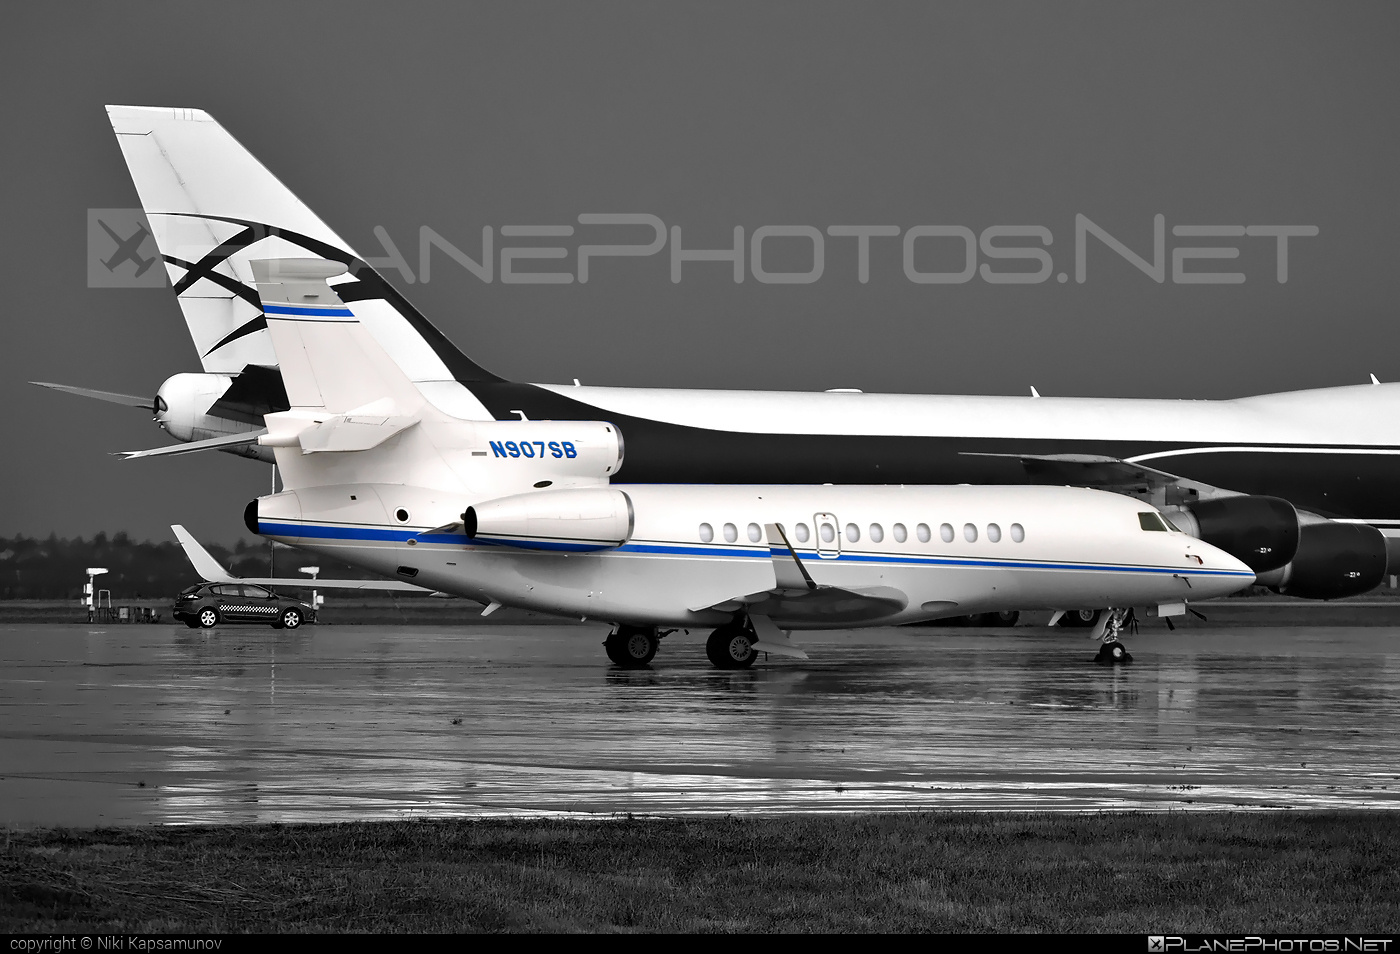 Dassault Falcon 7X - N907SB operated by Private operator #dassault #dassaultfalcon #dassaultfalcon7x #falcon7x